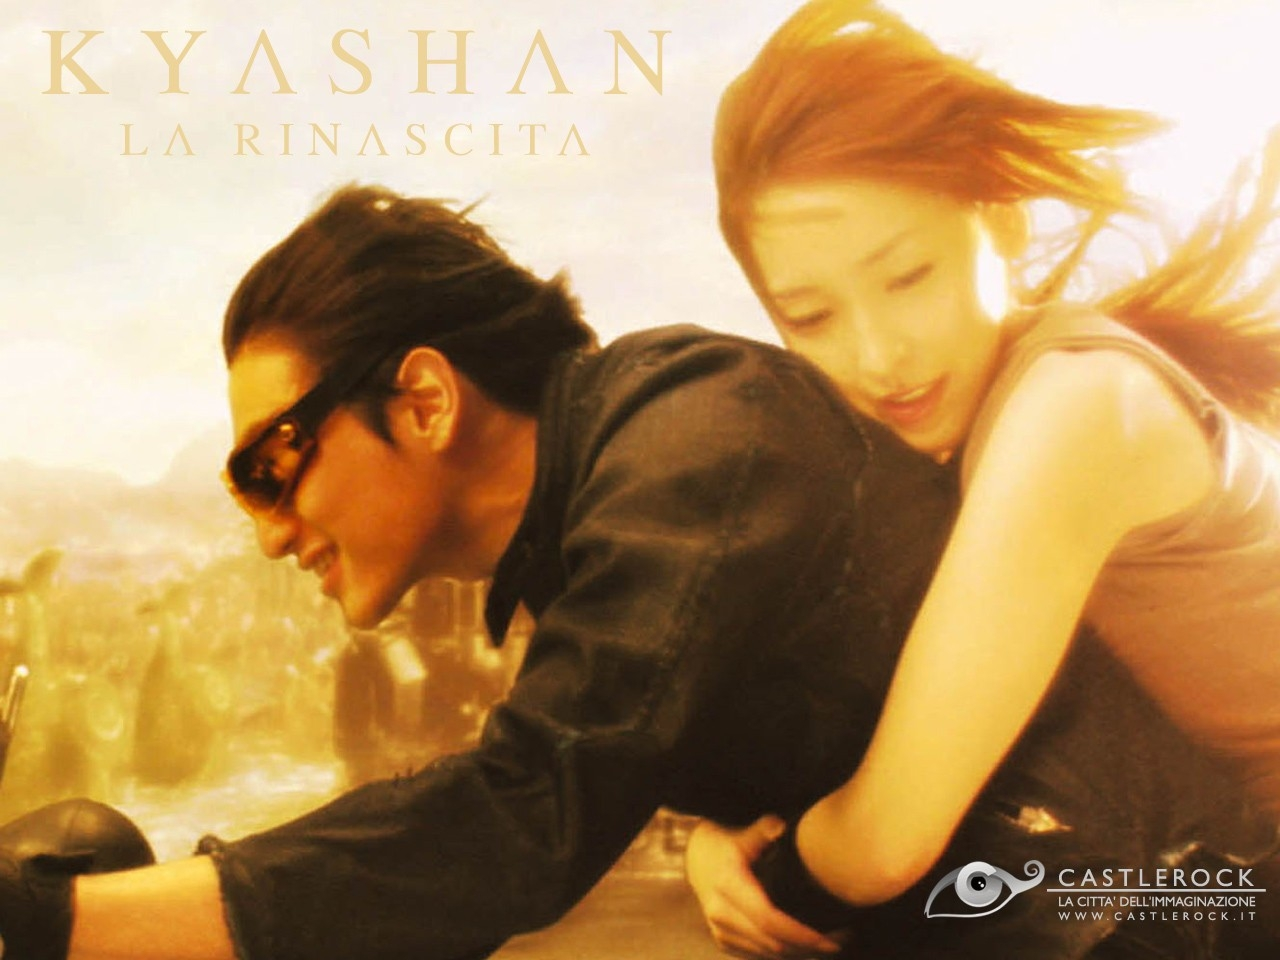 Wallpaper del film Kyashan